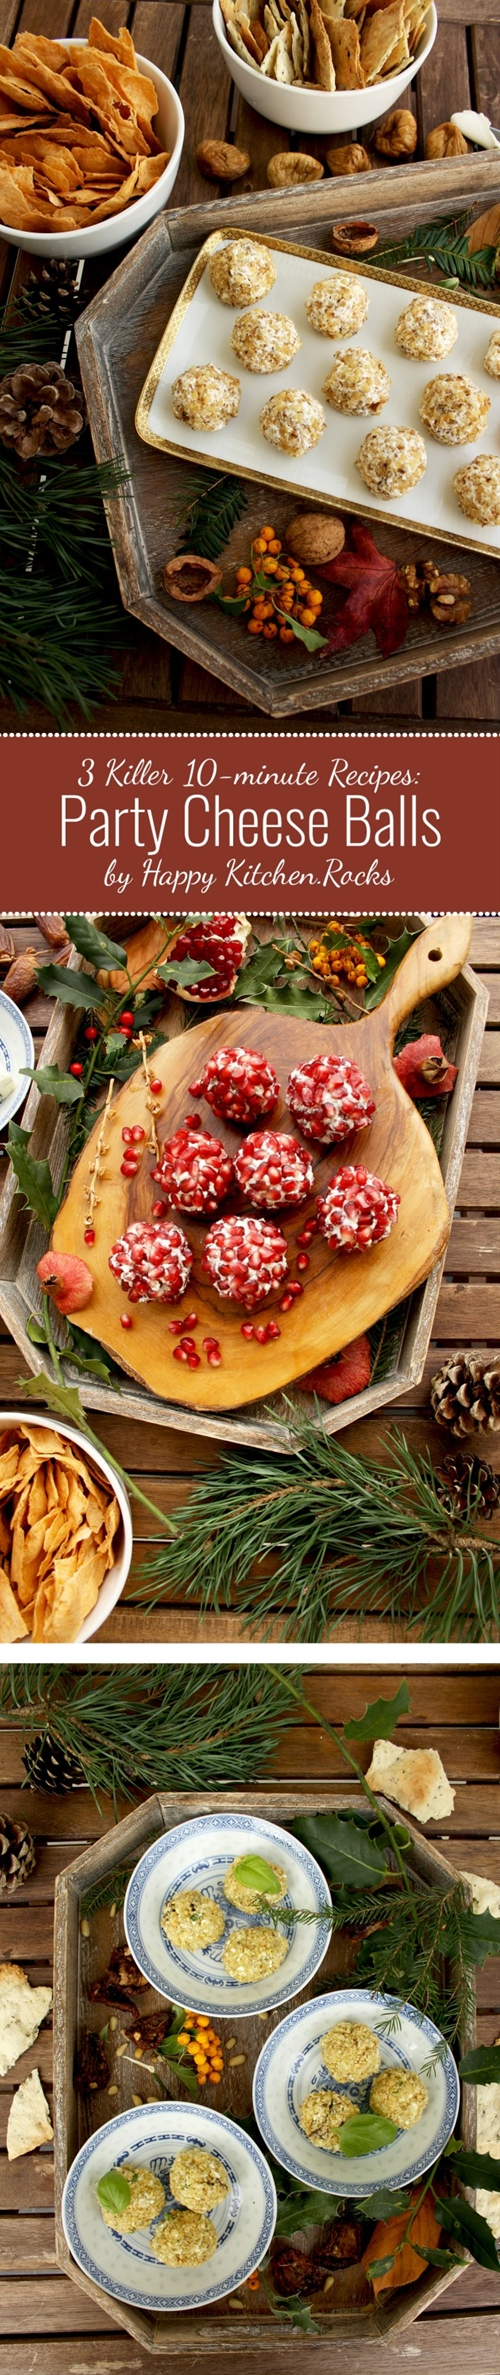 Party Cheese Balls: 3 Killer 10-minute Recipes